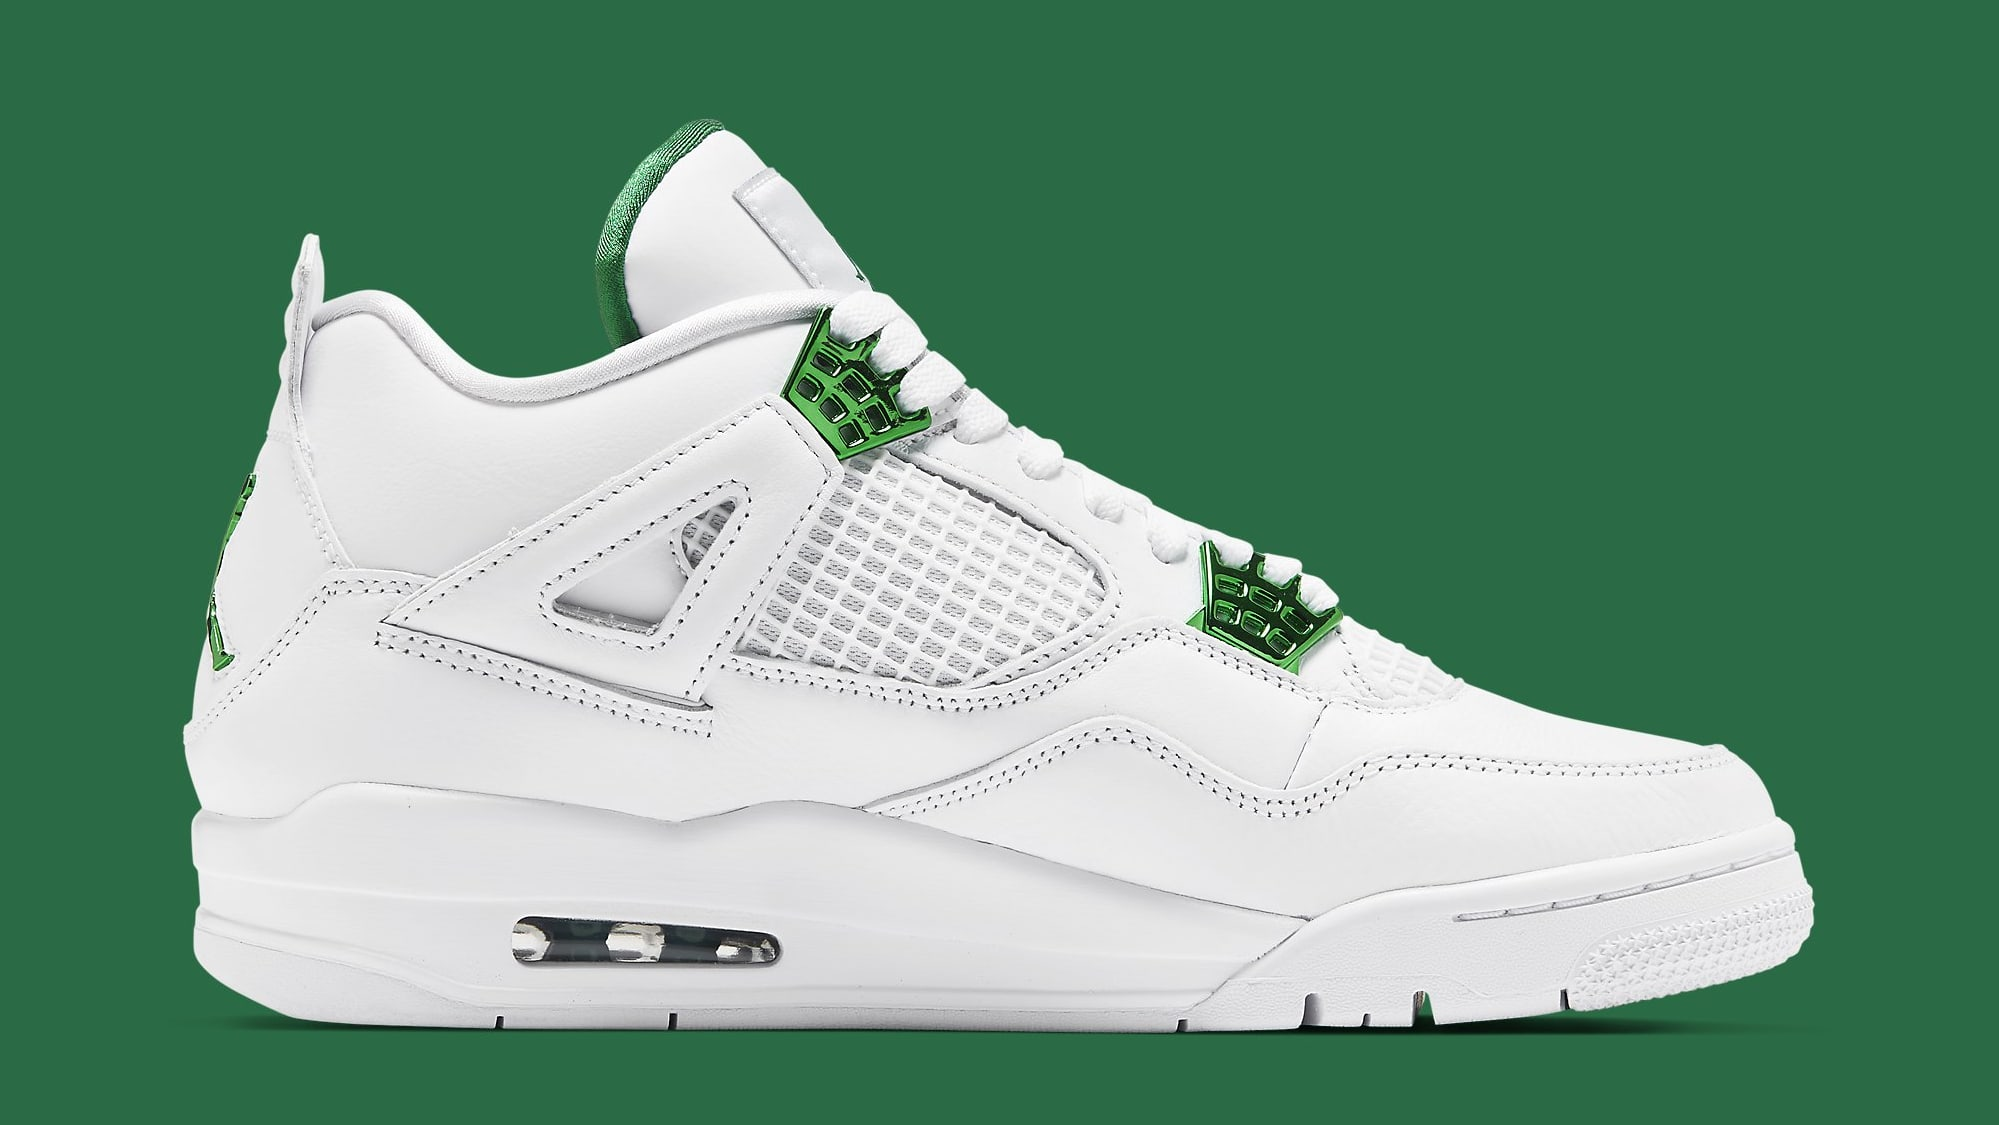 Air Jordan 4 Retro 'Green Metallic' CT8527-113 Medial